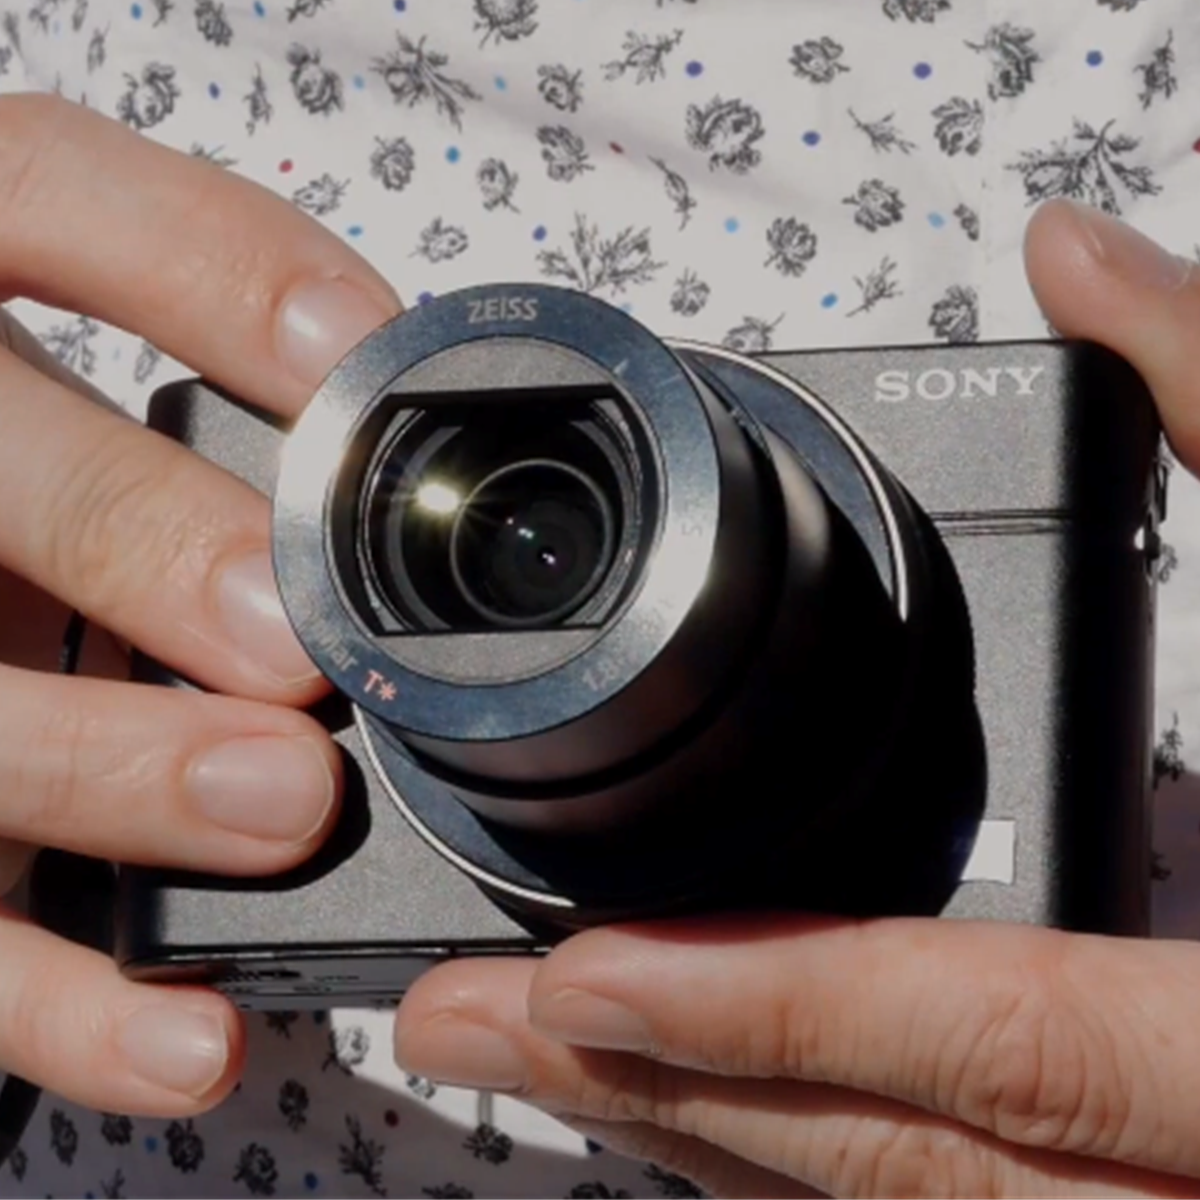 So what do we think? Our video review of the Sony RX100 IV: Digital